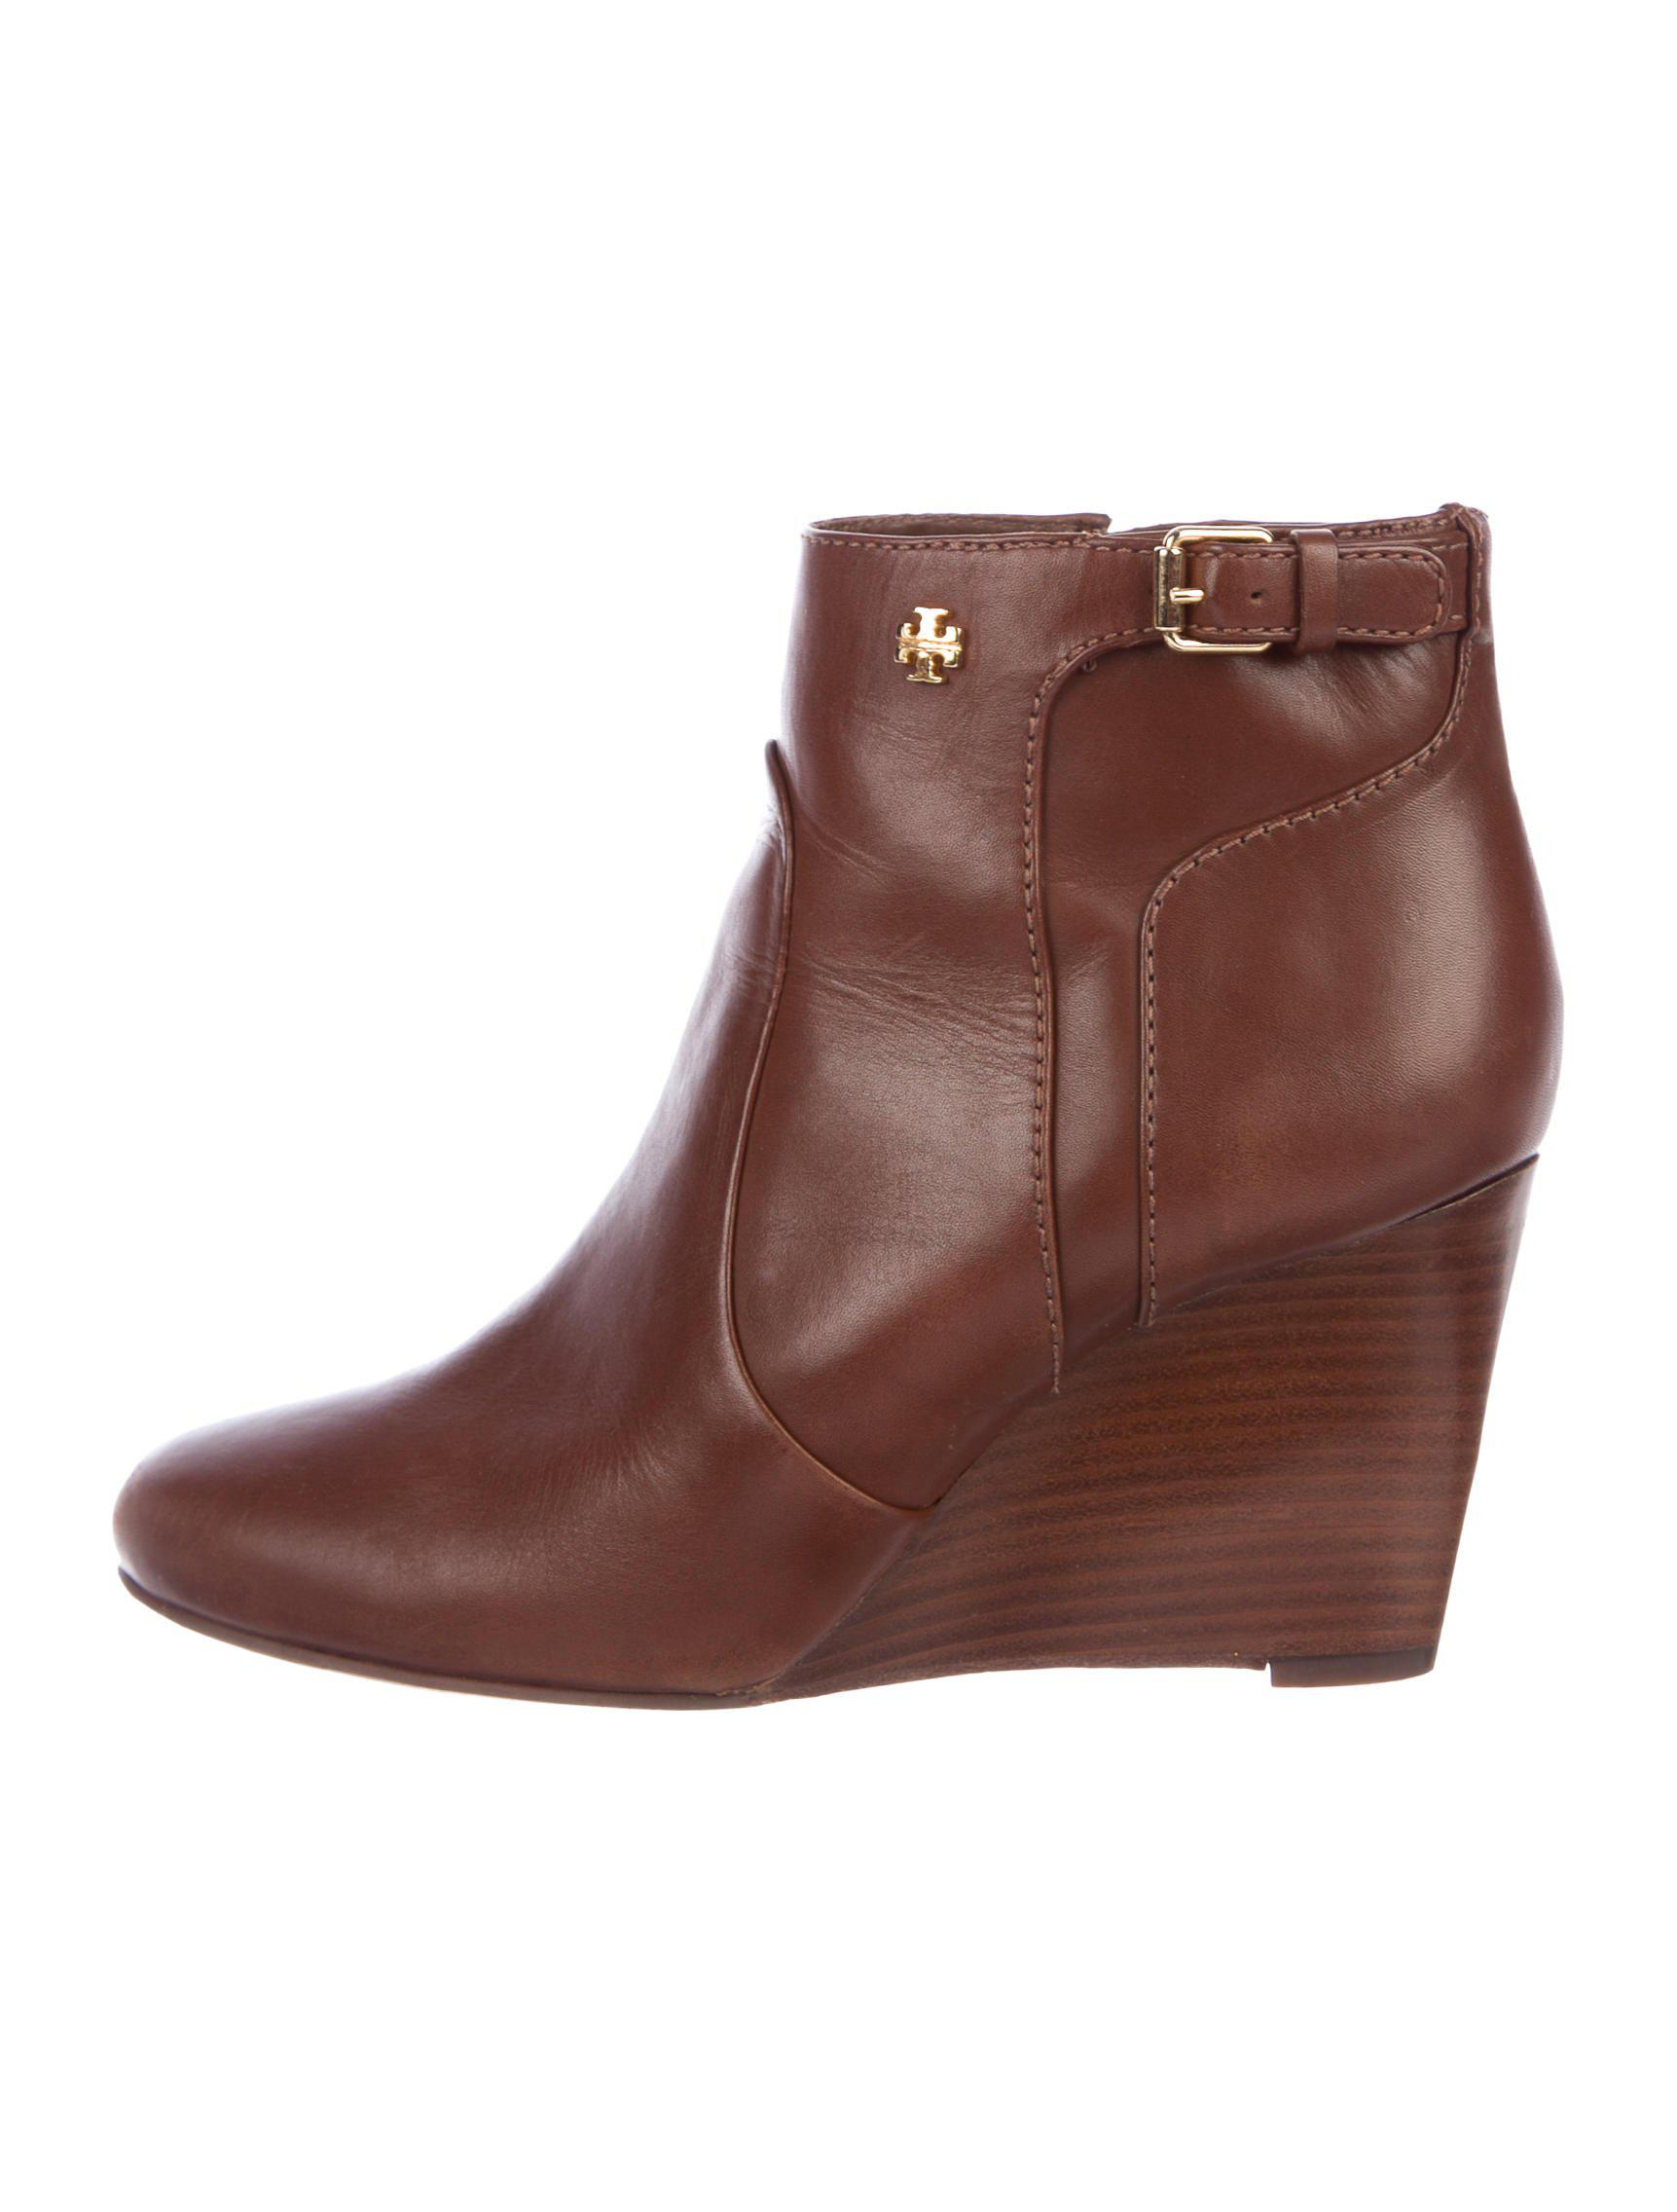 63828ddcab20 Lyst - Tory Burch Milan Leather Wedge Boots Brown in Metallic